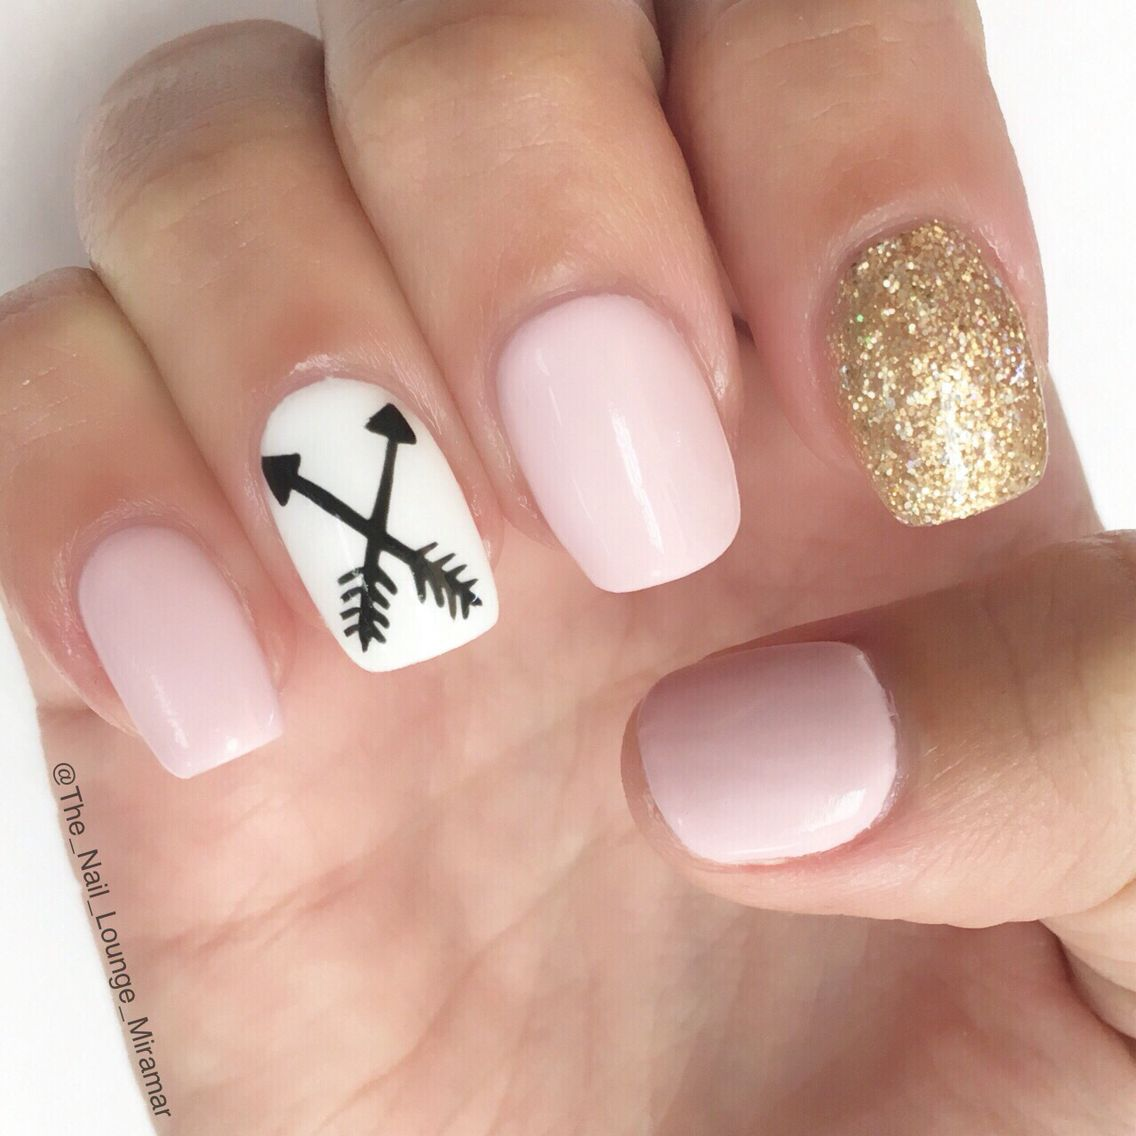 Arrow nail art design | Nail Art | Pinterest | Arrow nails, Arrow ...